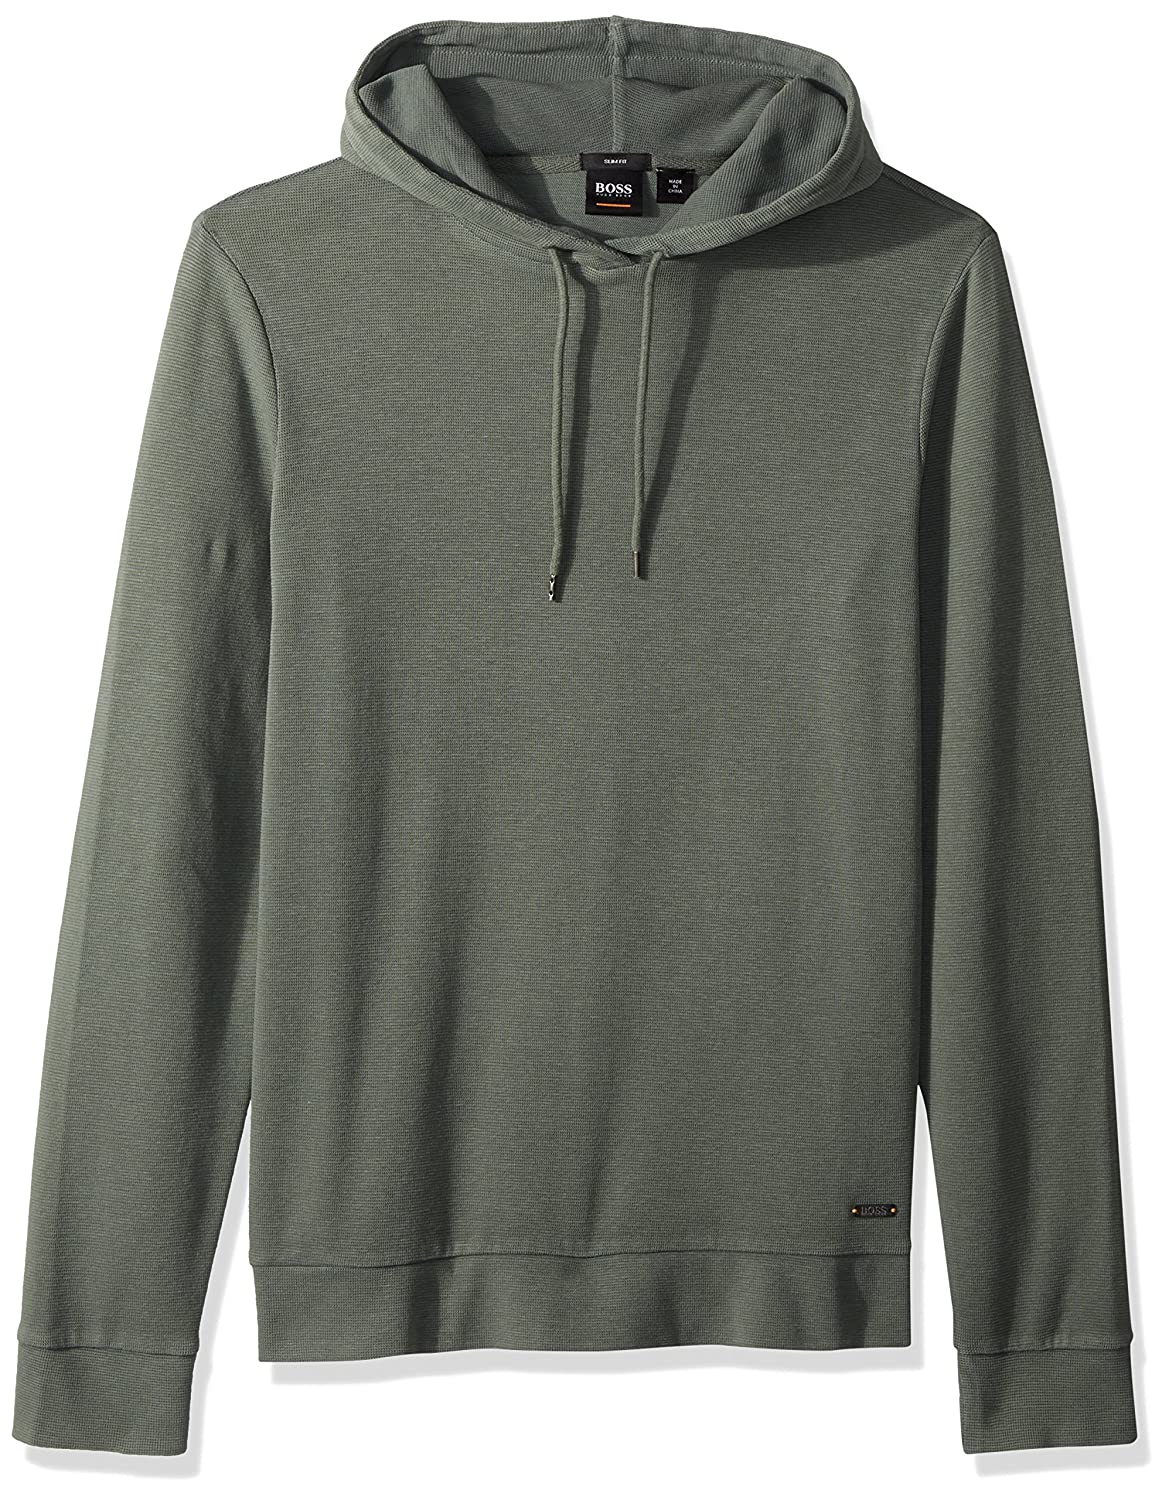 0cc1063e Amazon.com: BOSS Orange Men's Cotton Lightweight Waffle Hoodie: Clothing